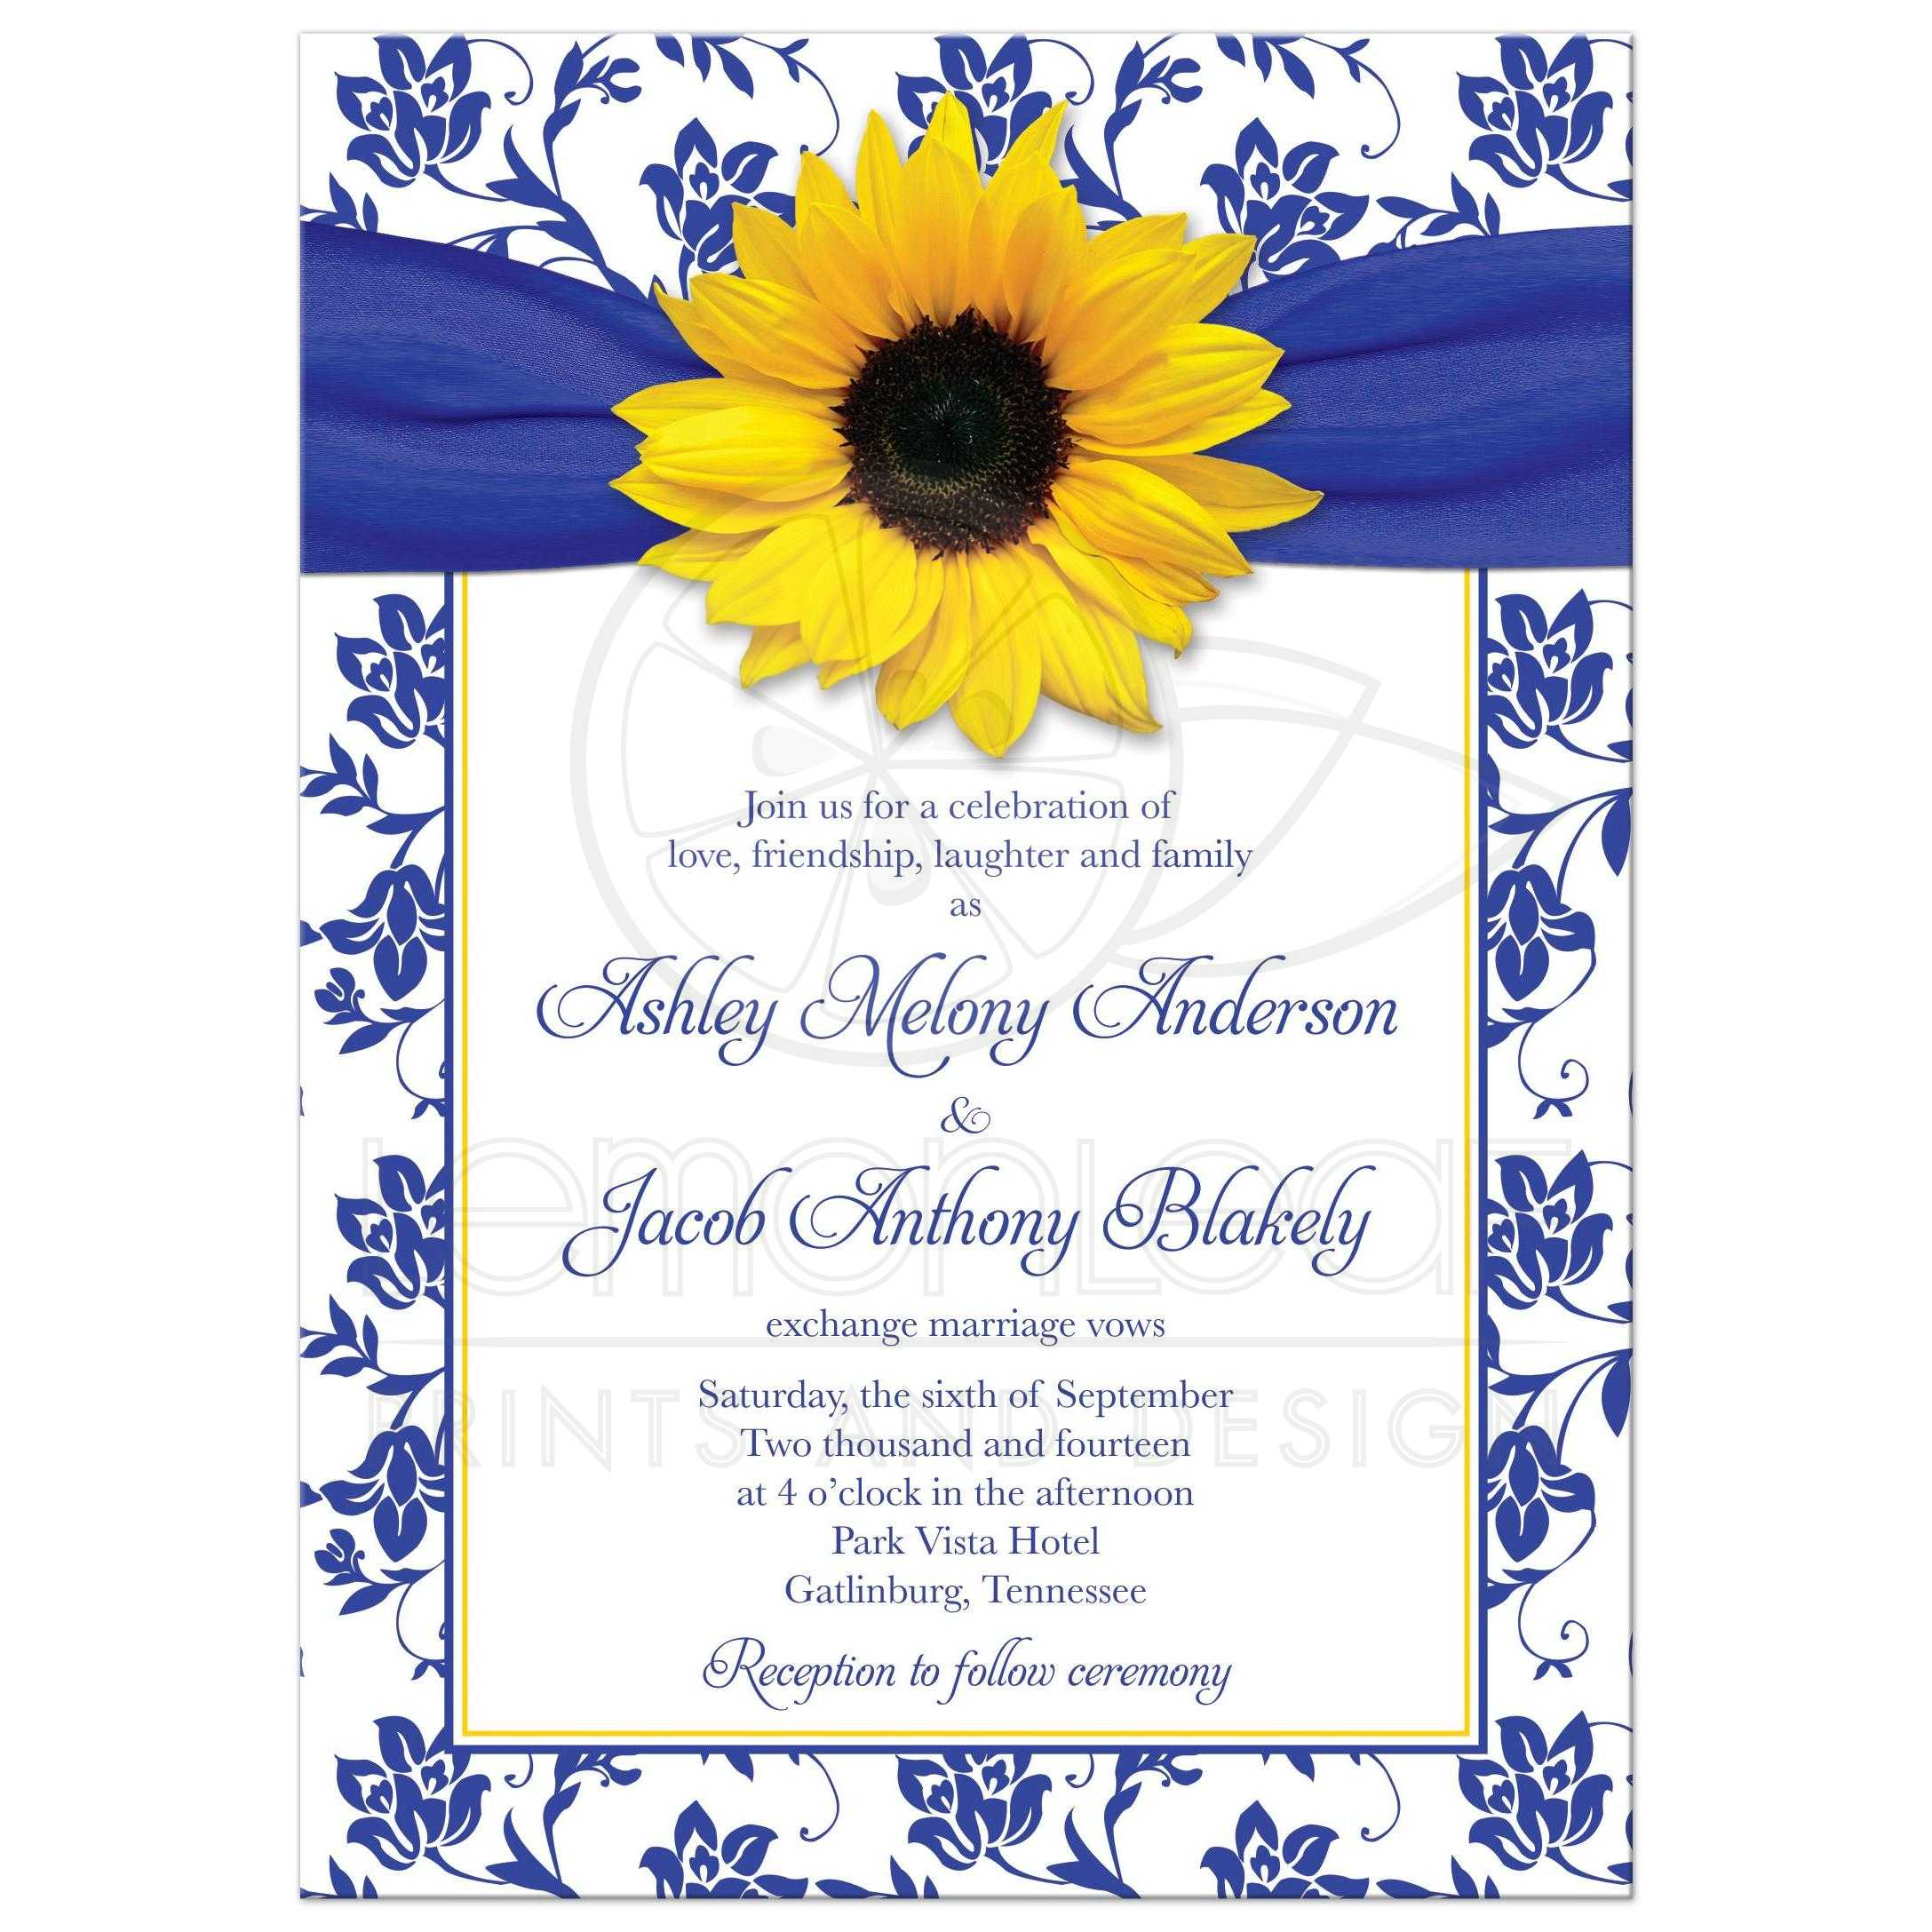 Wedding Invitation | Sunflower Damask Royal Blue Yellow